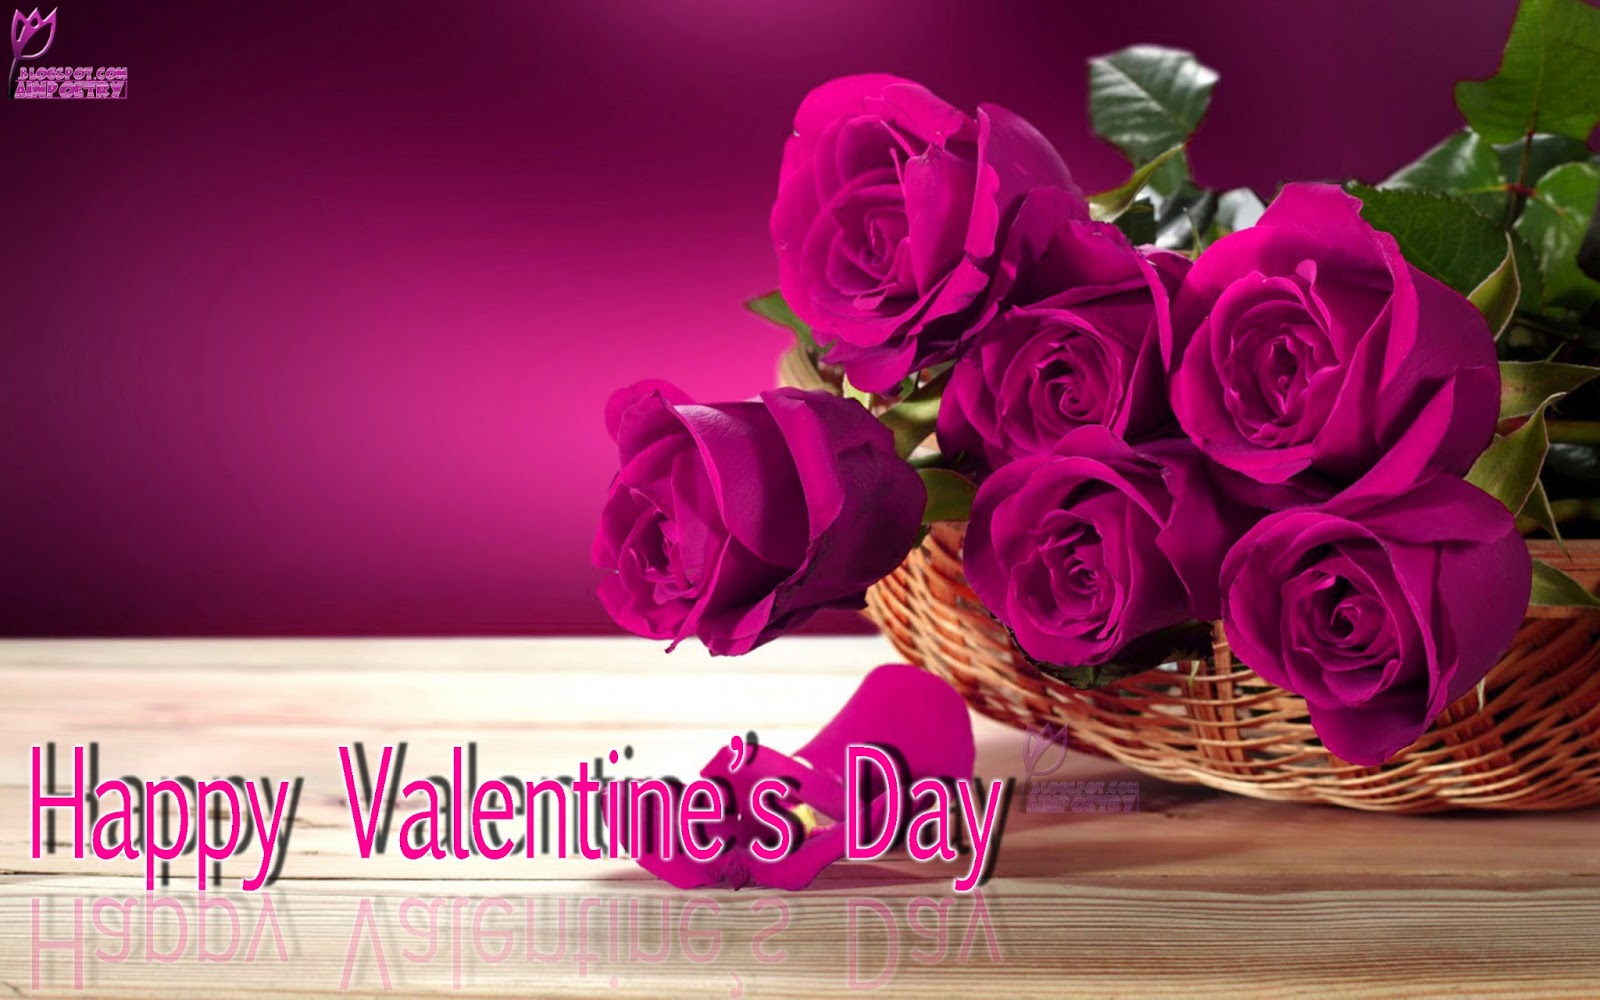 Happy-Valentines-Day-Wallpaper-Wishes-With-Flowers-Image-HD-Wide